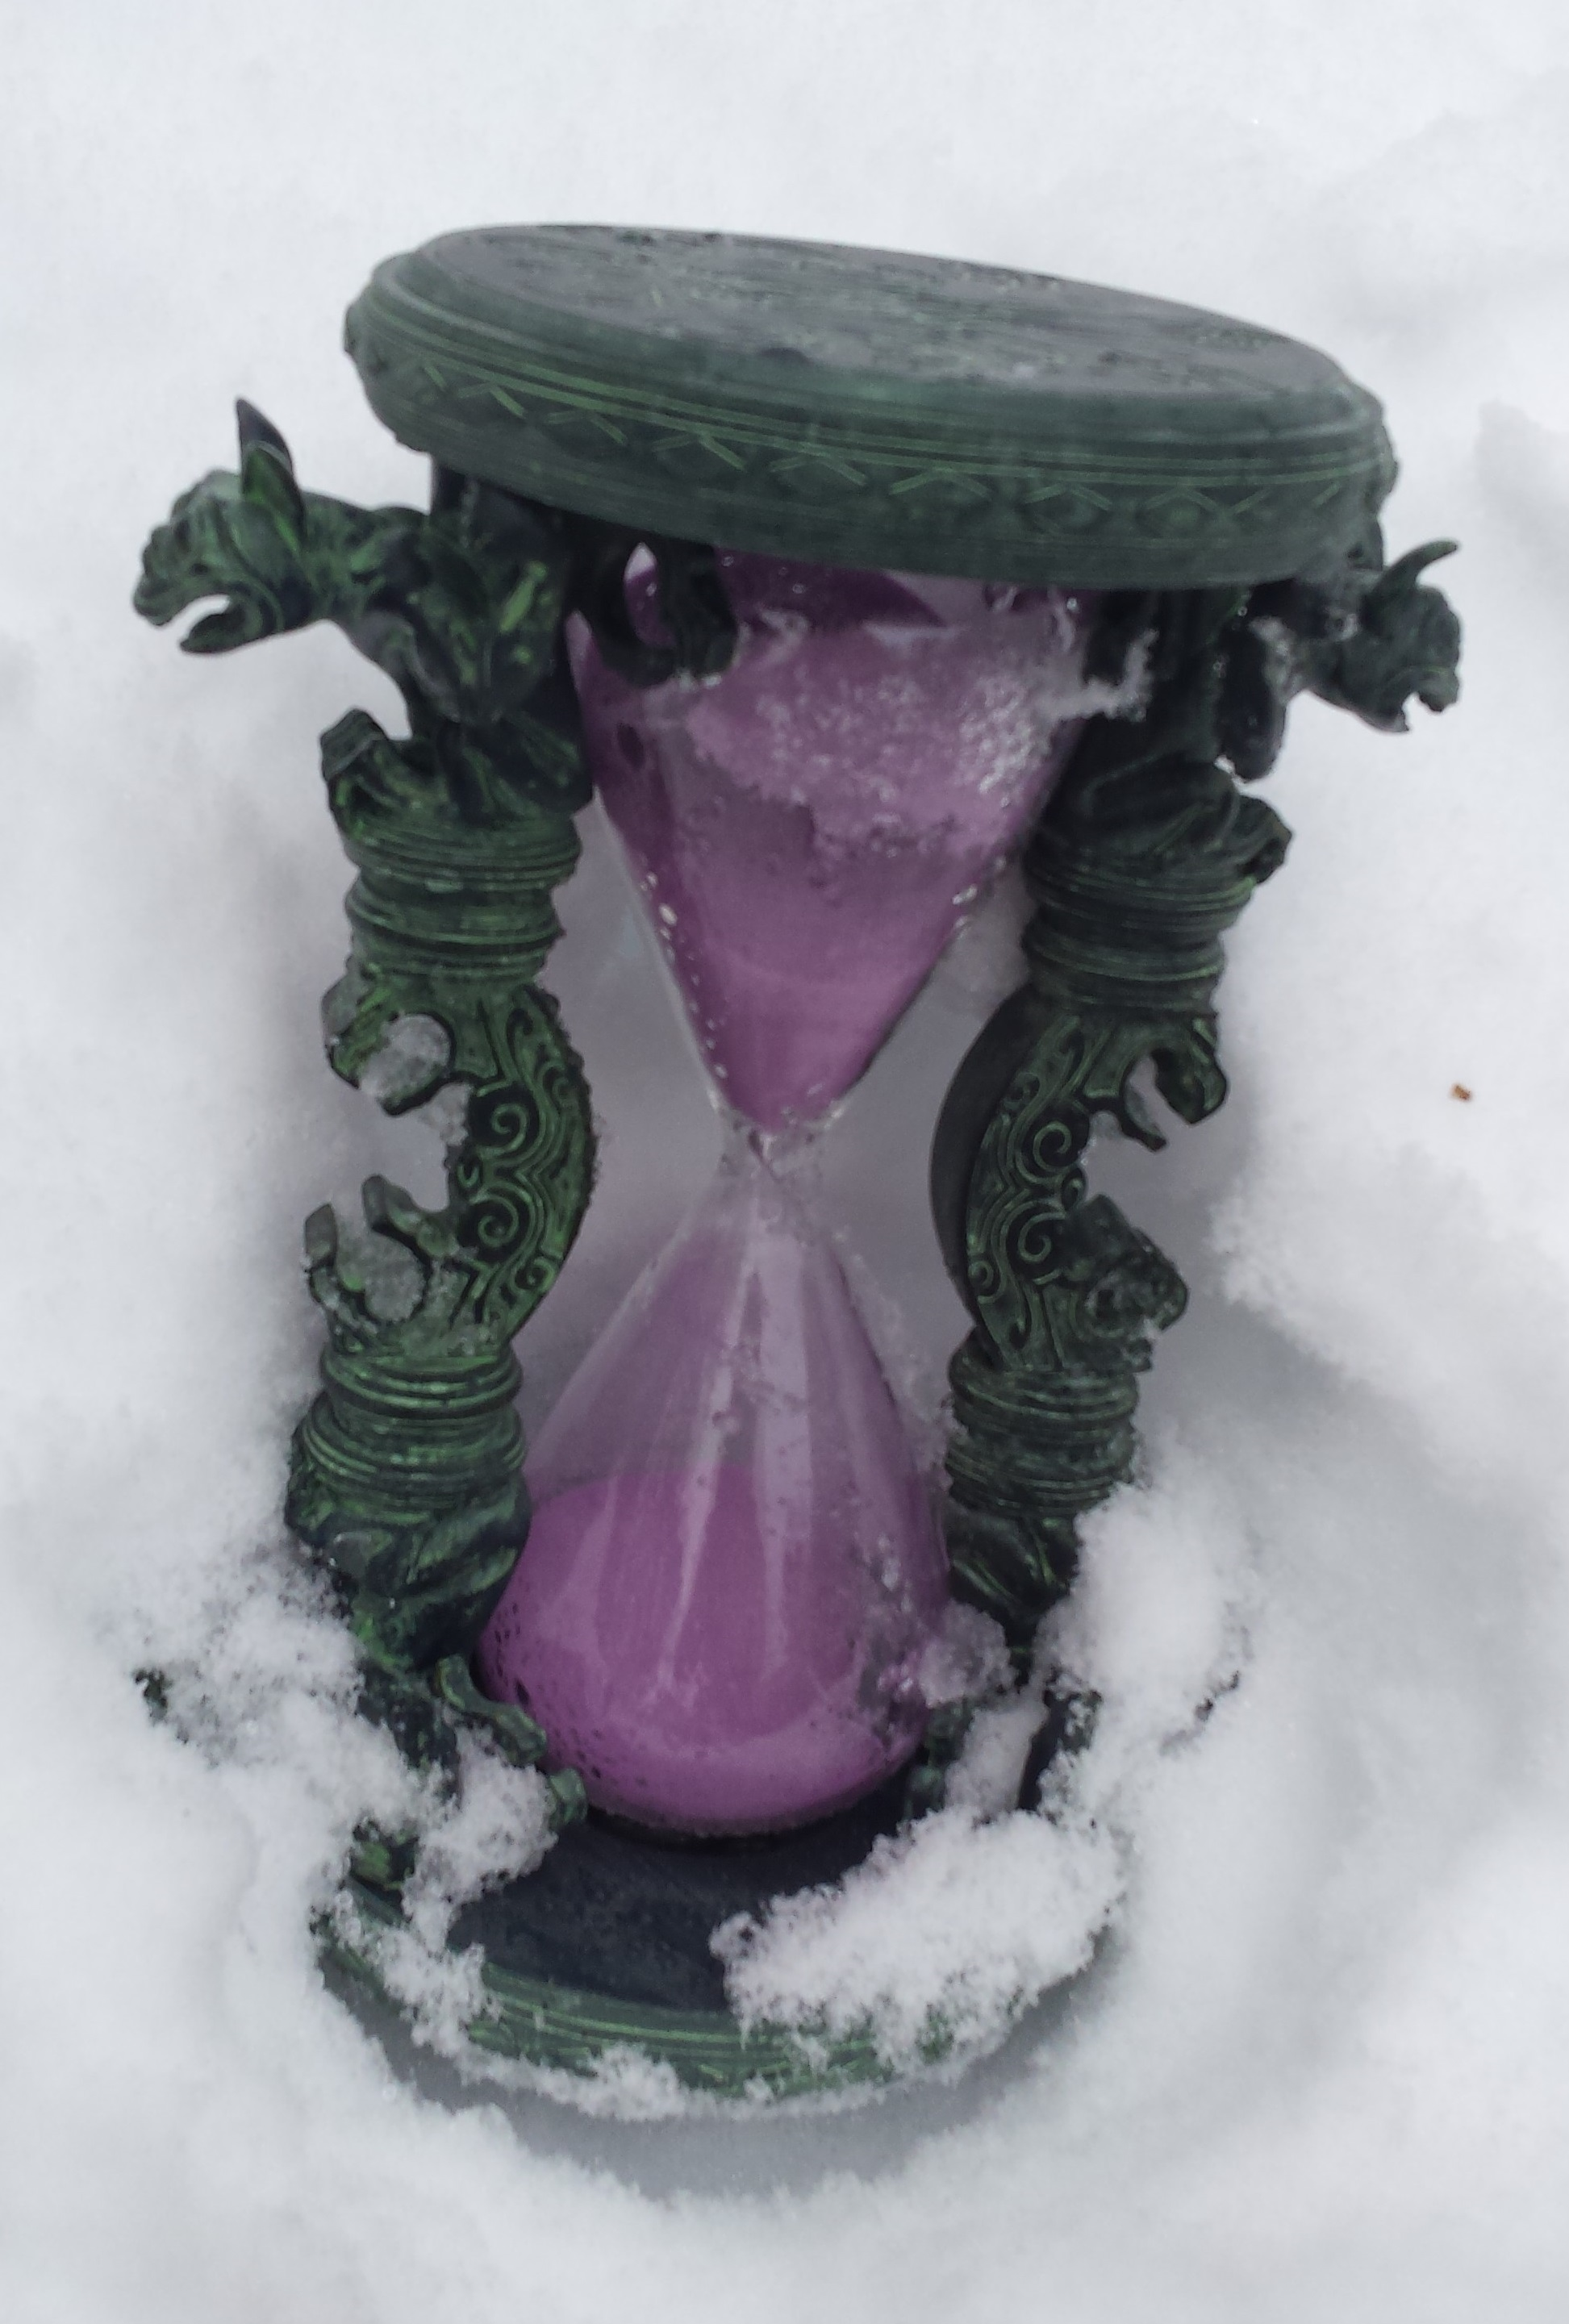 An hourglass filled with purple sand, rests in the snow